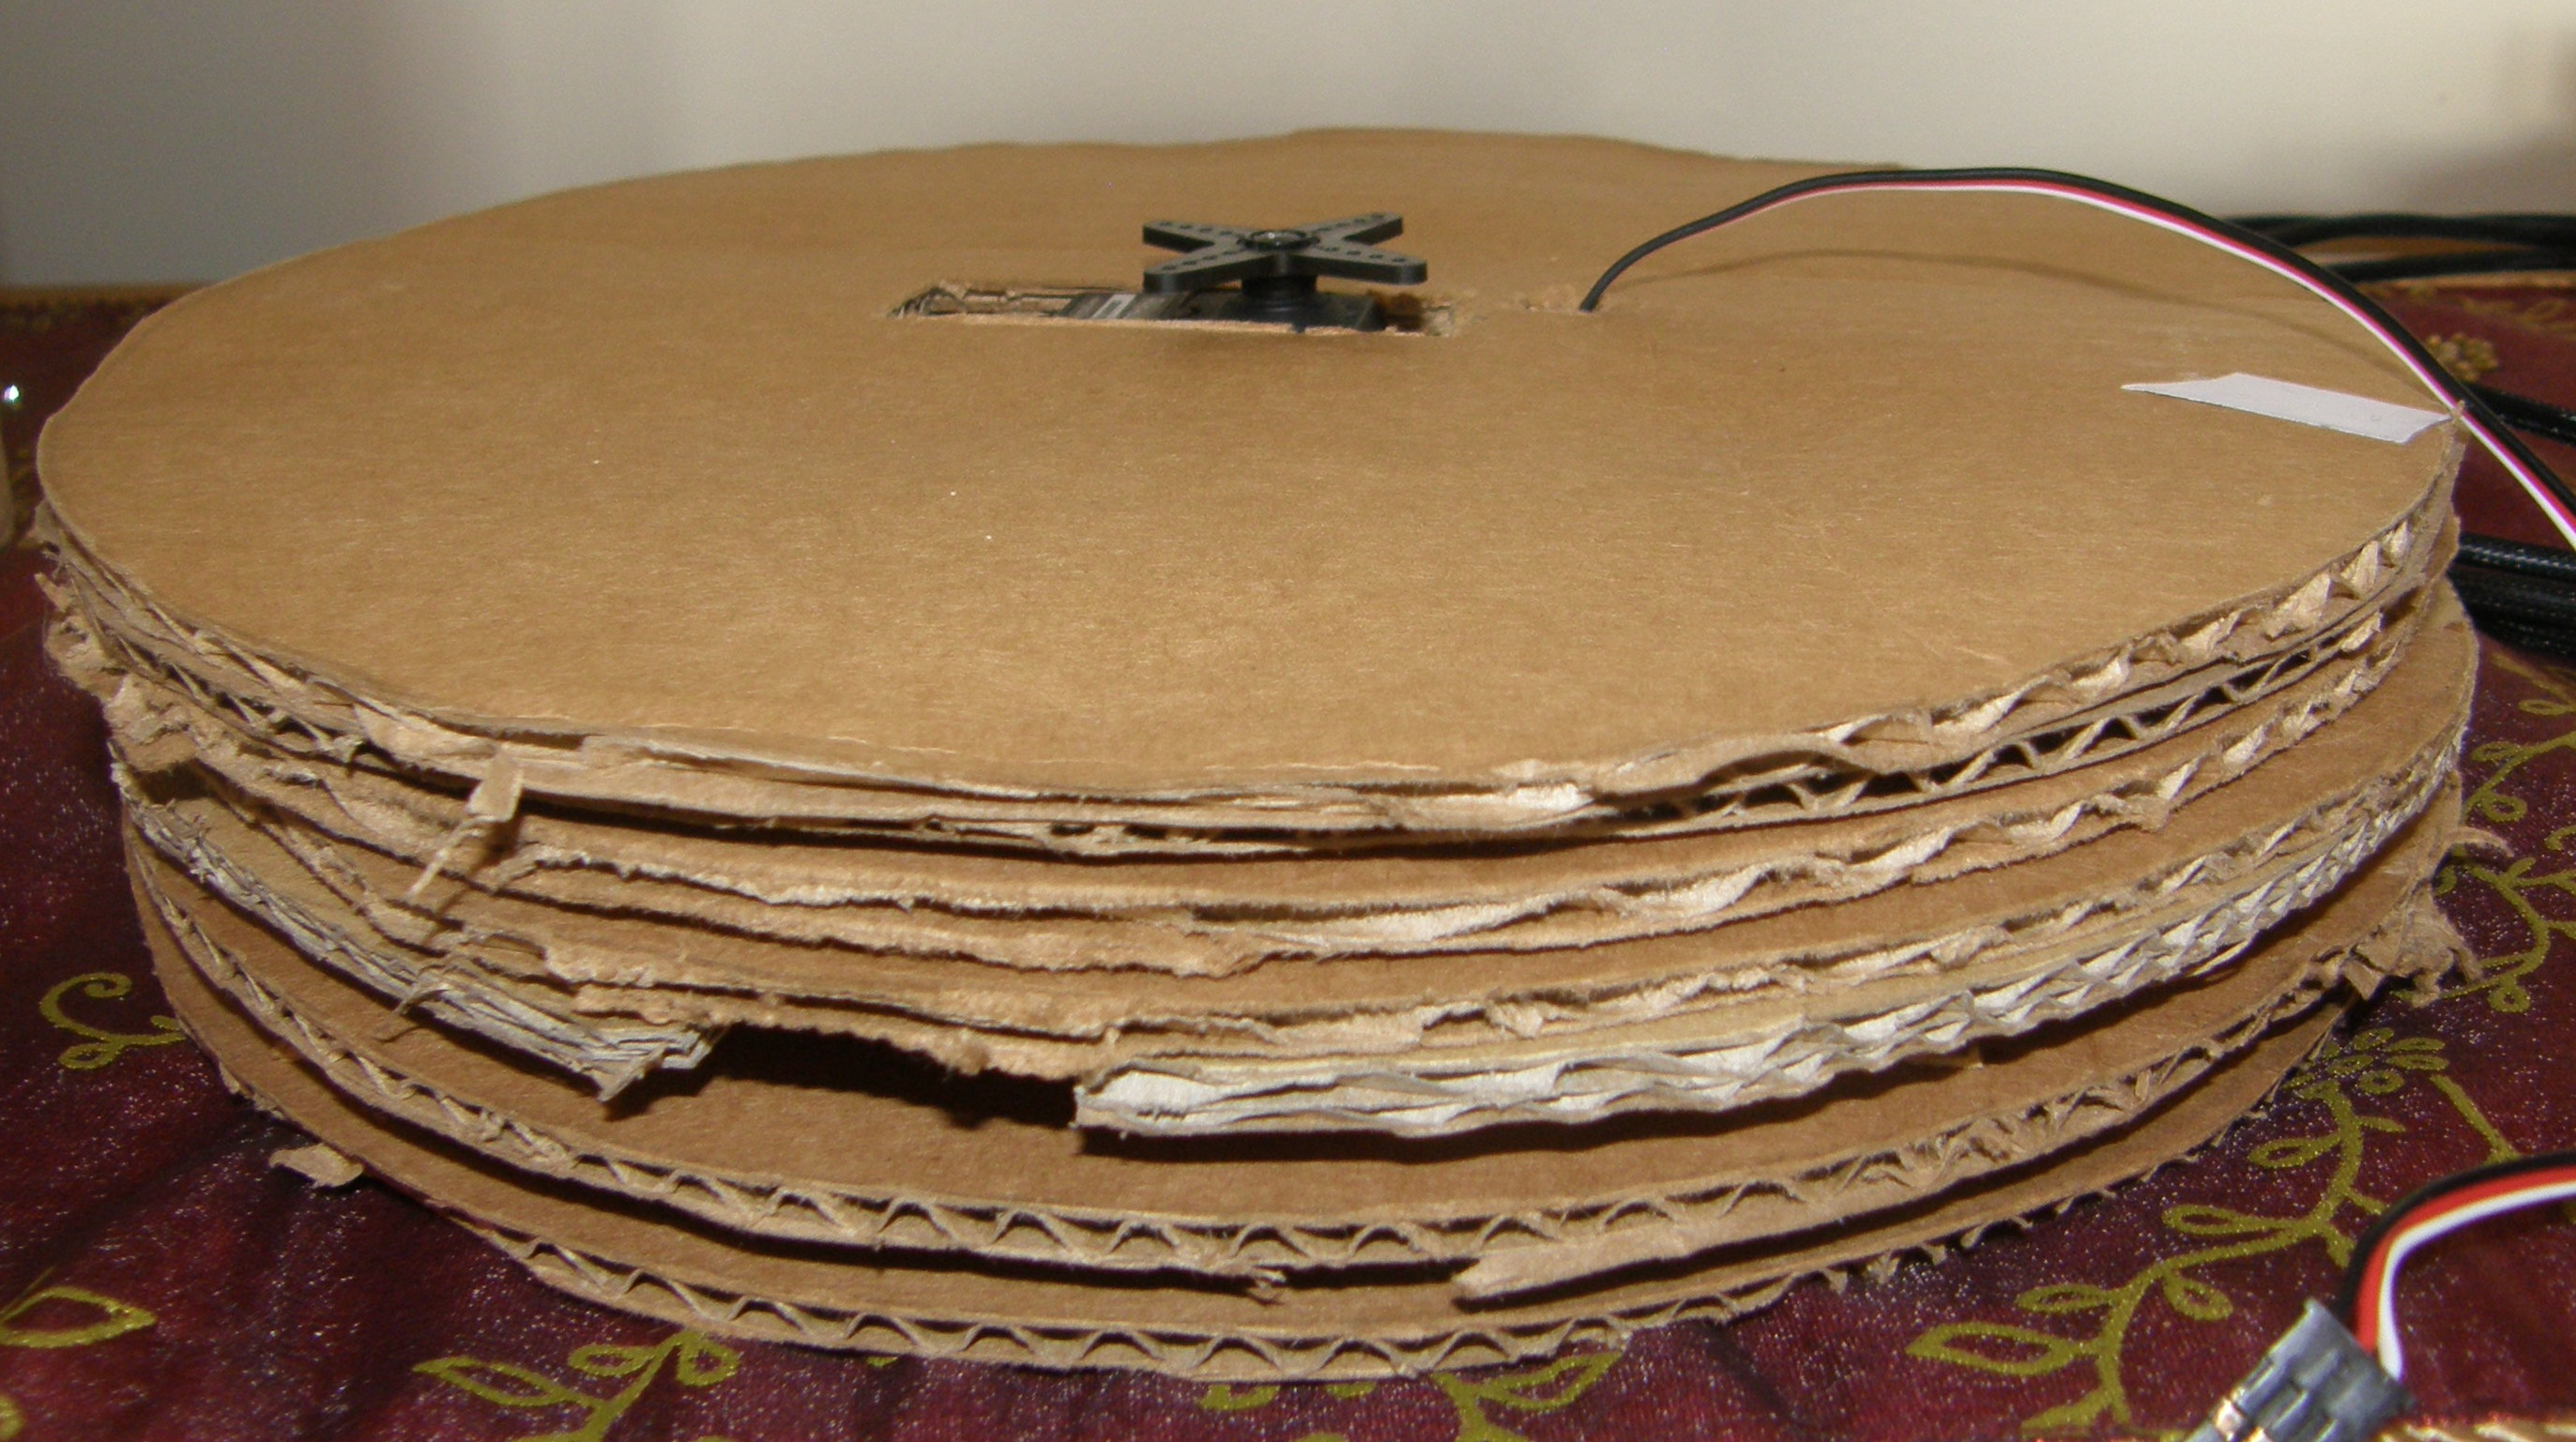 Picture of Cardboard! the Base